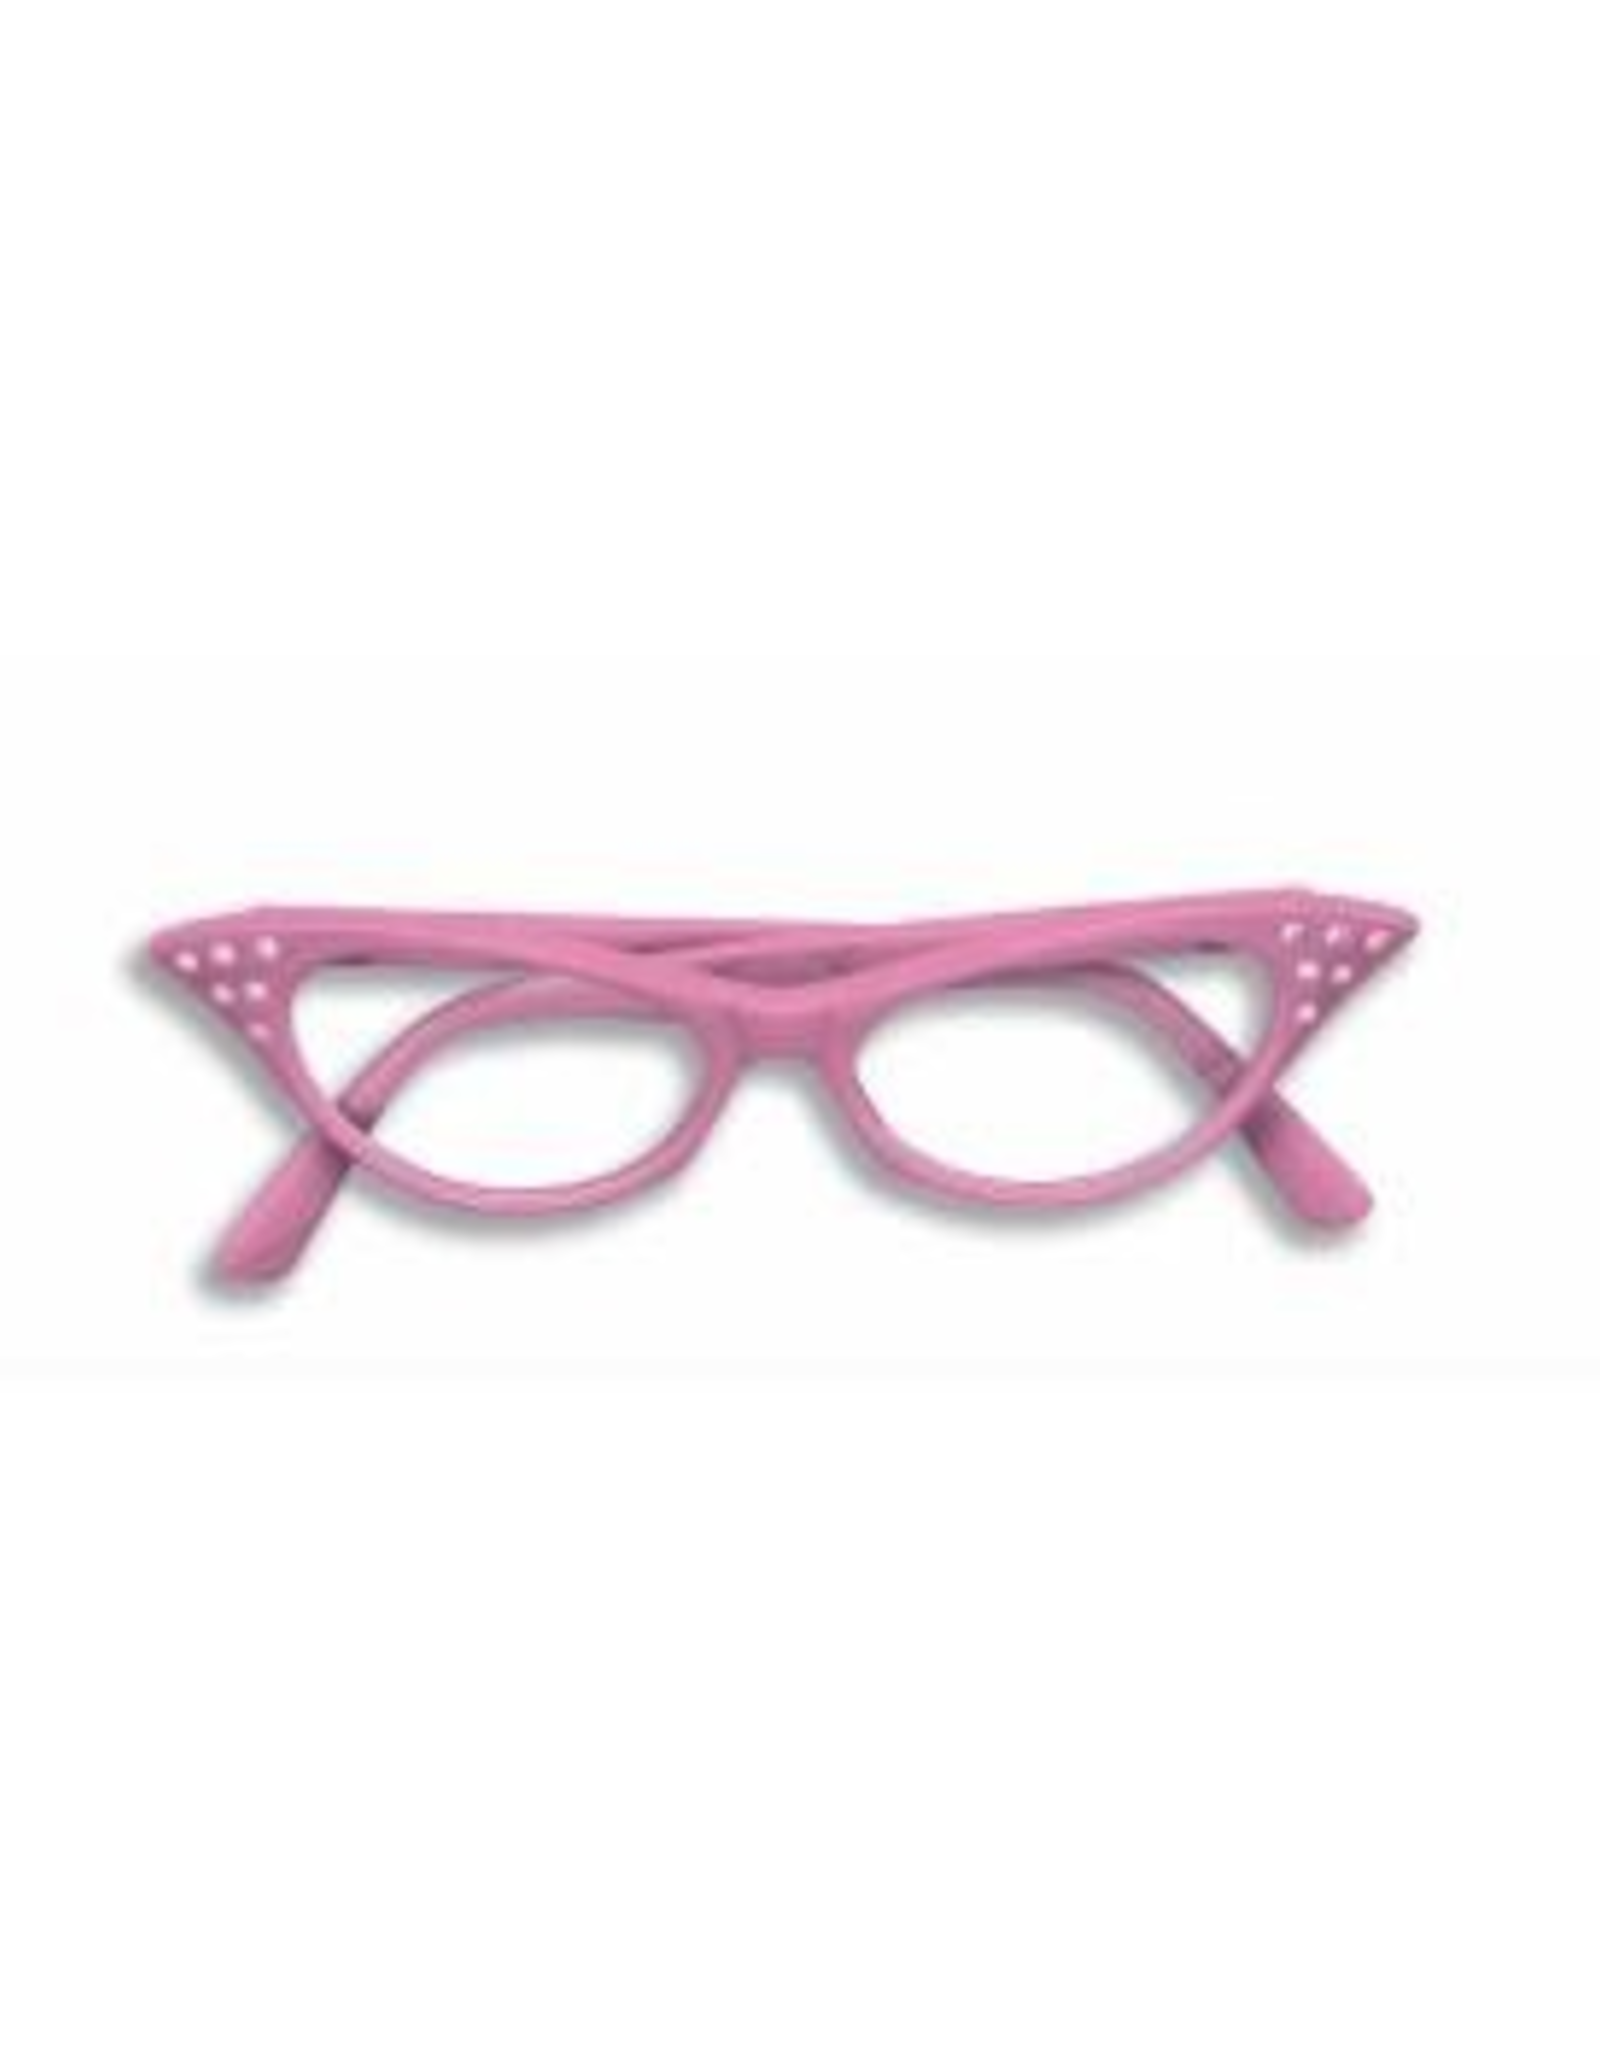 GLASSES-50'S RHINESTONECLEAR LENS, PINK